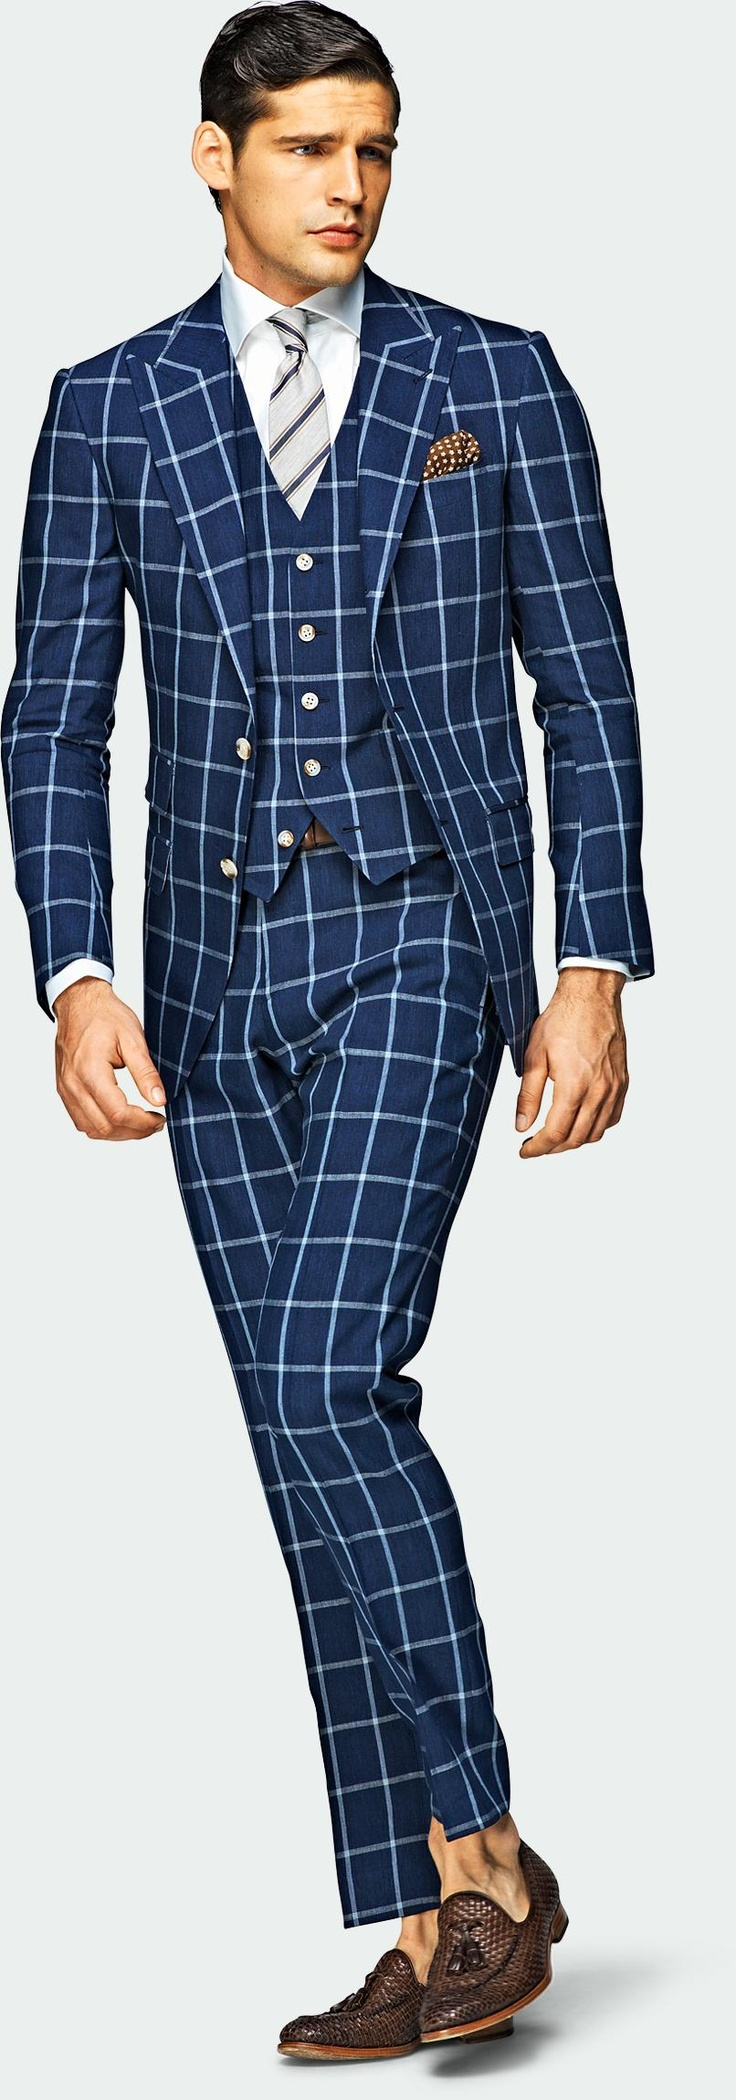 Pajamas or a Suit? Either way pretty nifty.